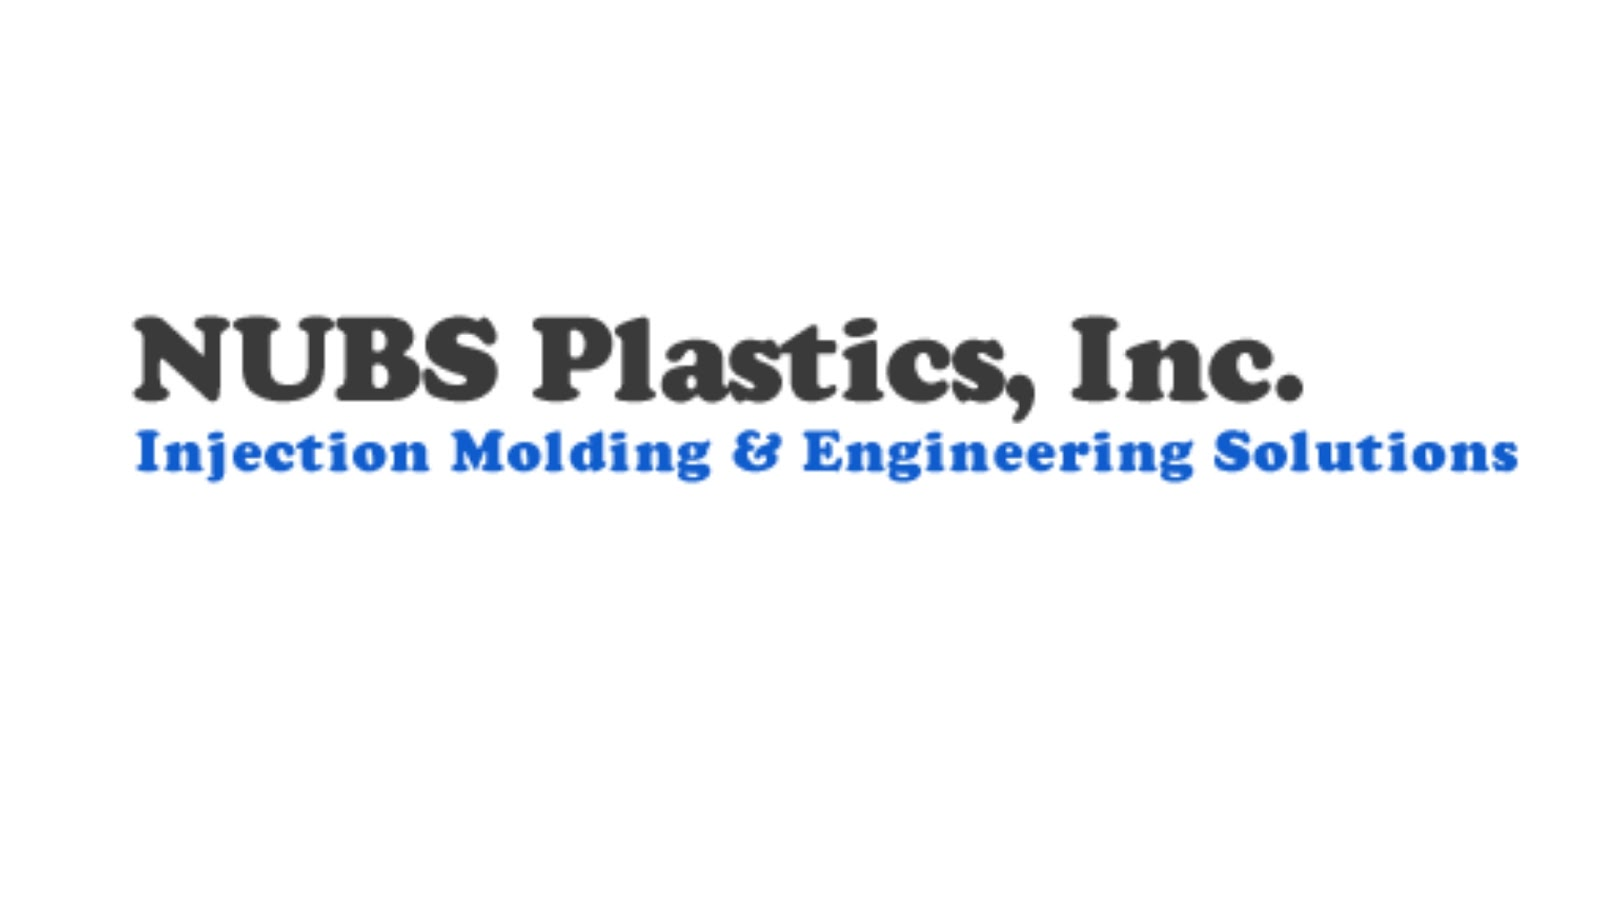 How to Find the Best Injection Molding Company?